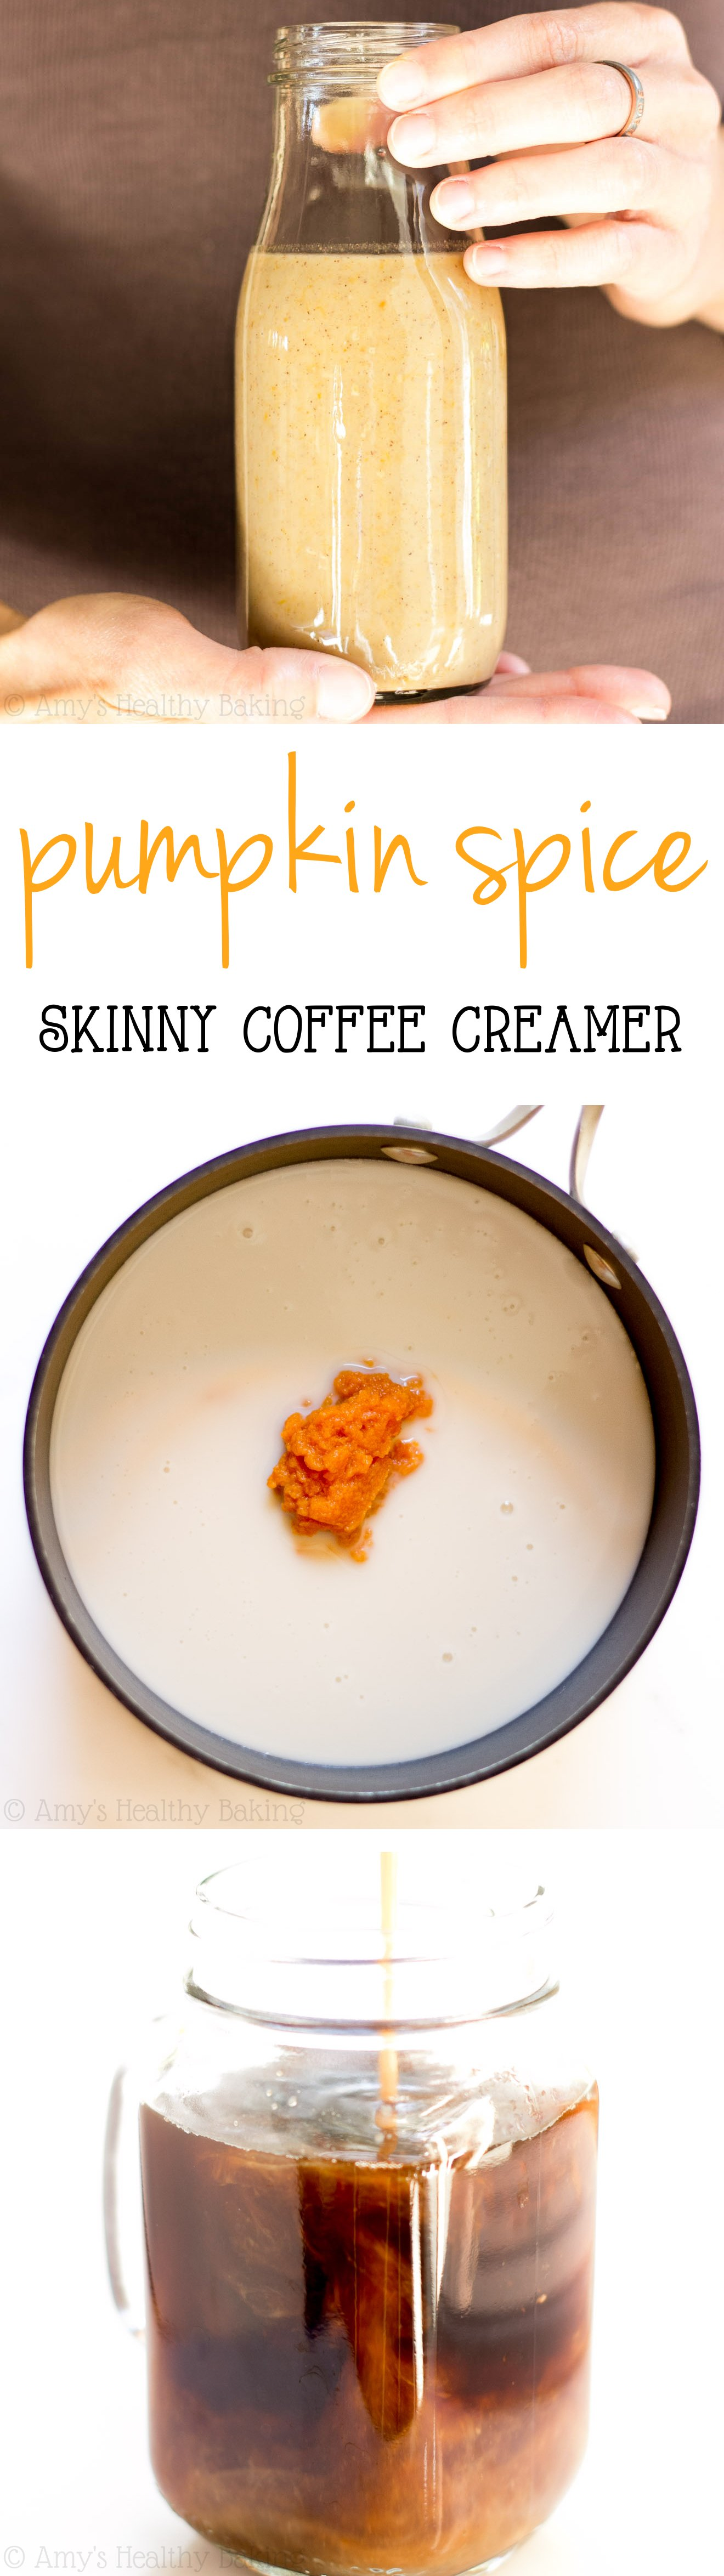 Make your coffee taste like pumpkin pie with this Skinny Pumpkin Spice Coffee Creamer! It's SO easy to make & just 2 calories per tablespoon!